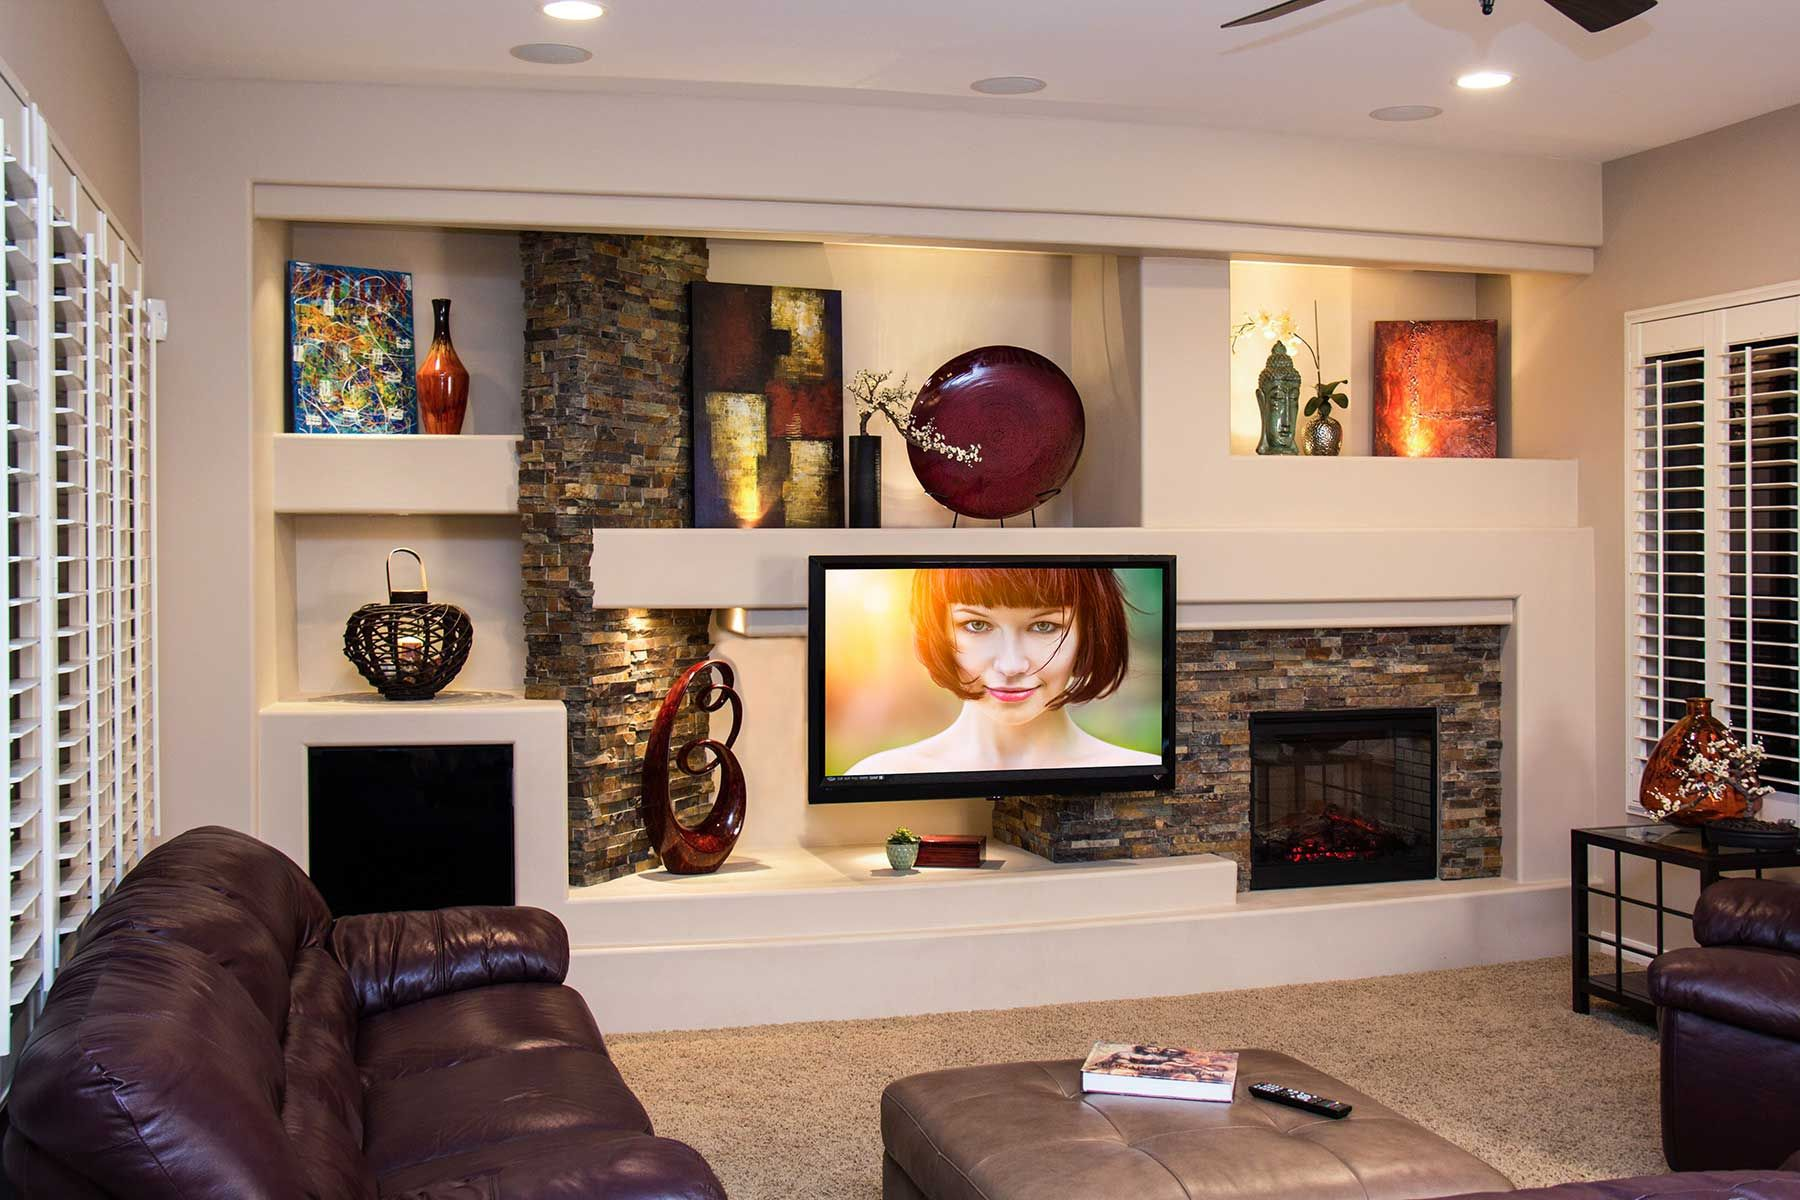 DAGR Design recently completed a new custom home entertainment